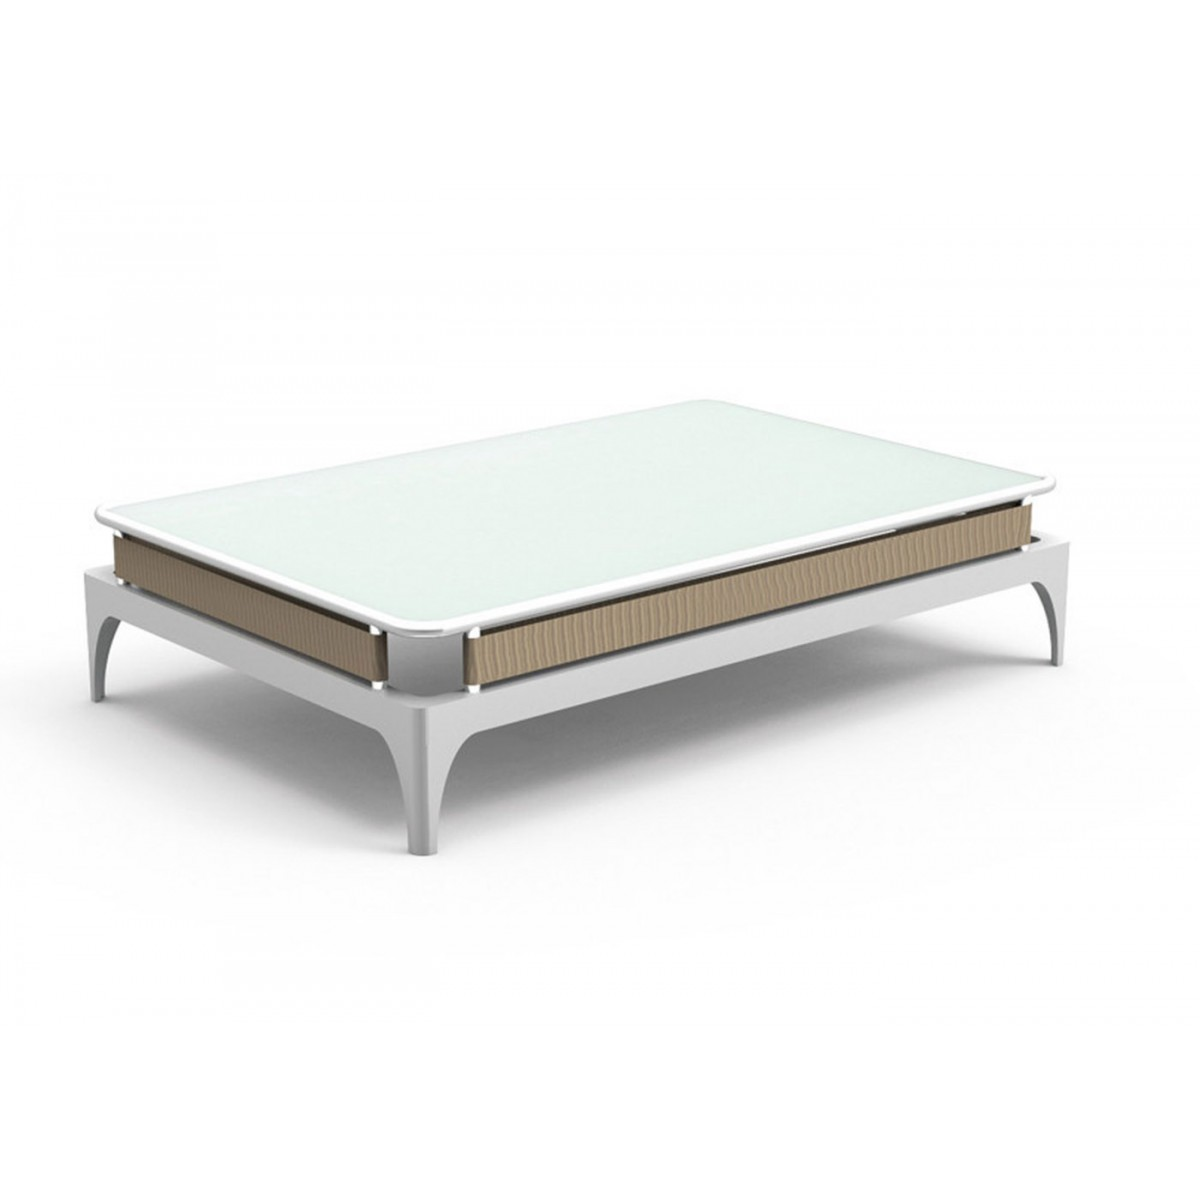 Table basse design pad roberto serio par talenti - Table basse pour salon ...